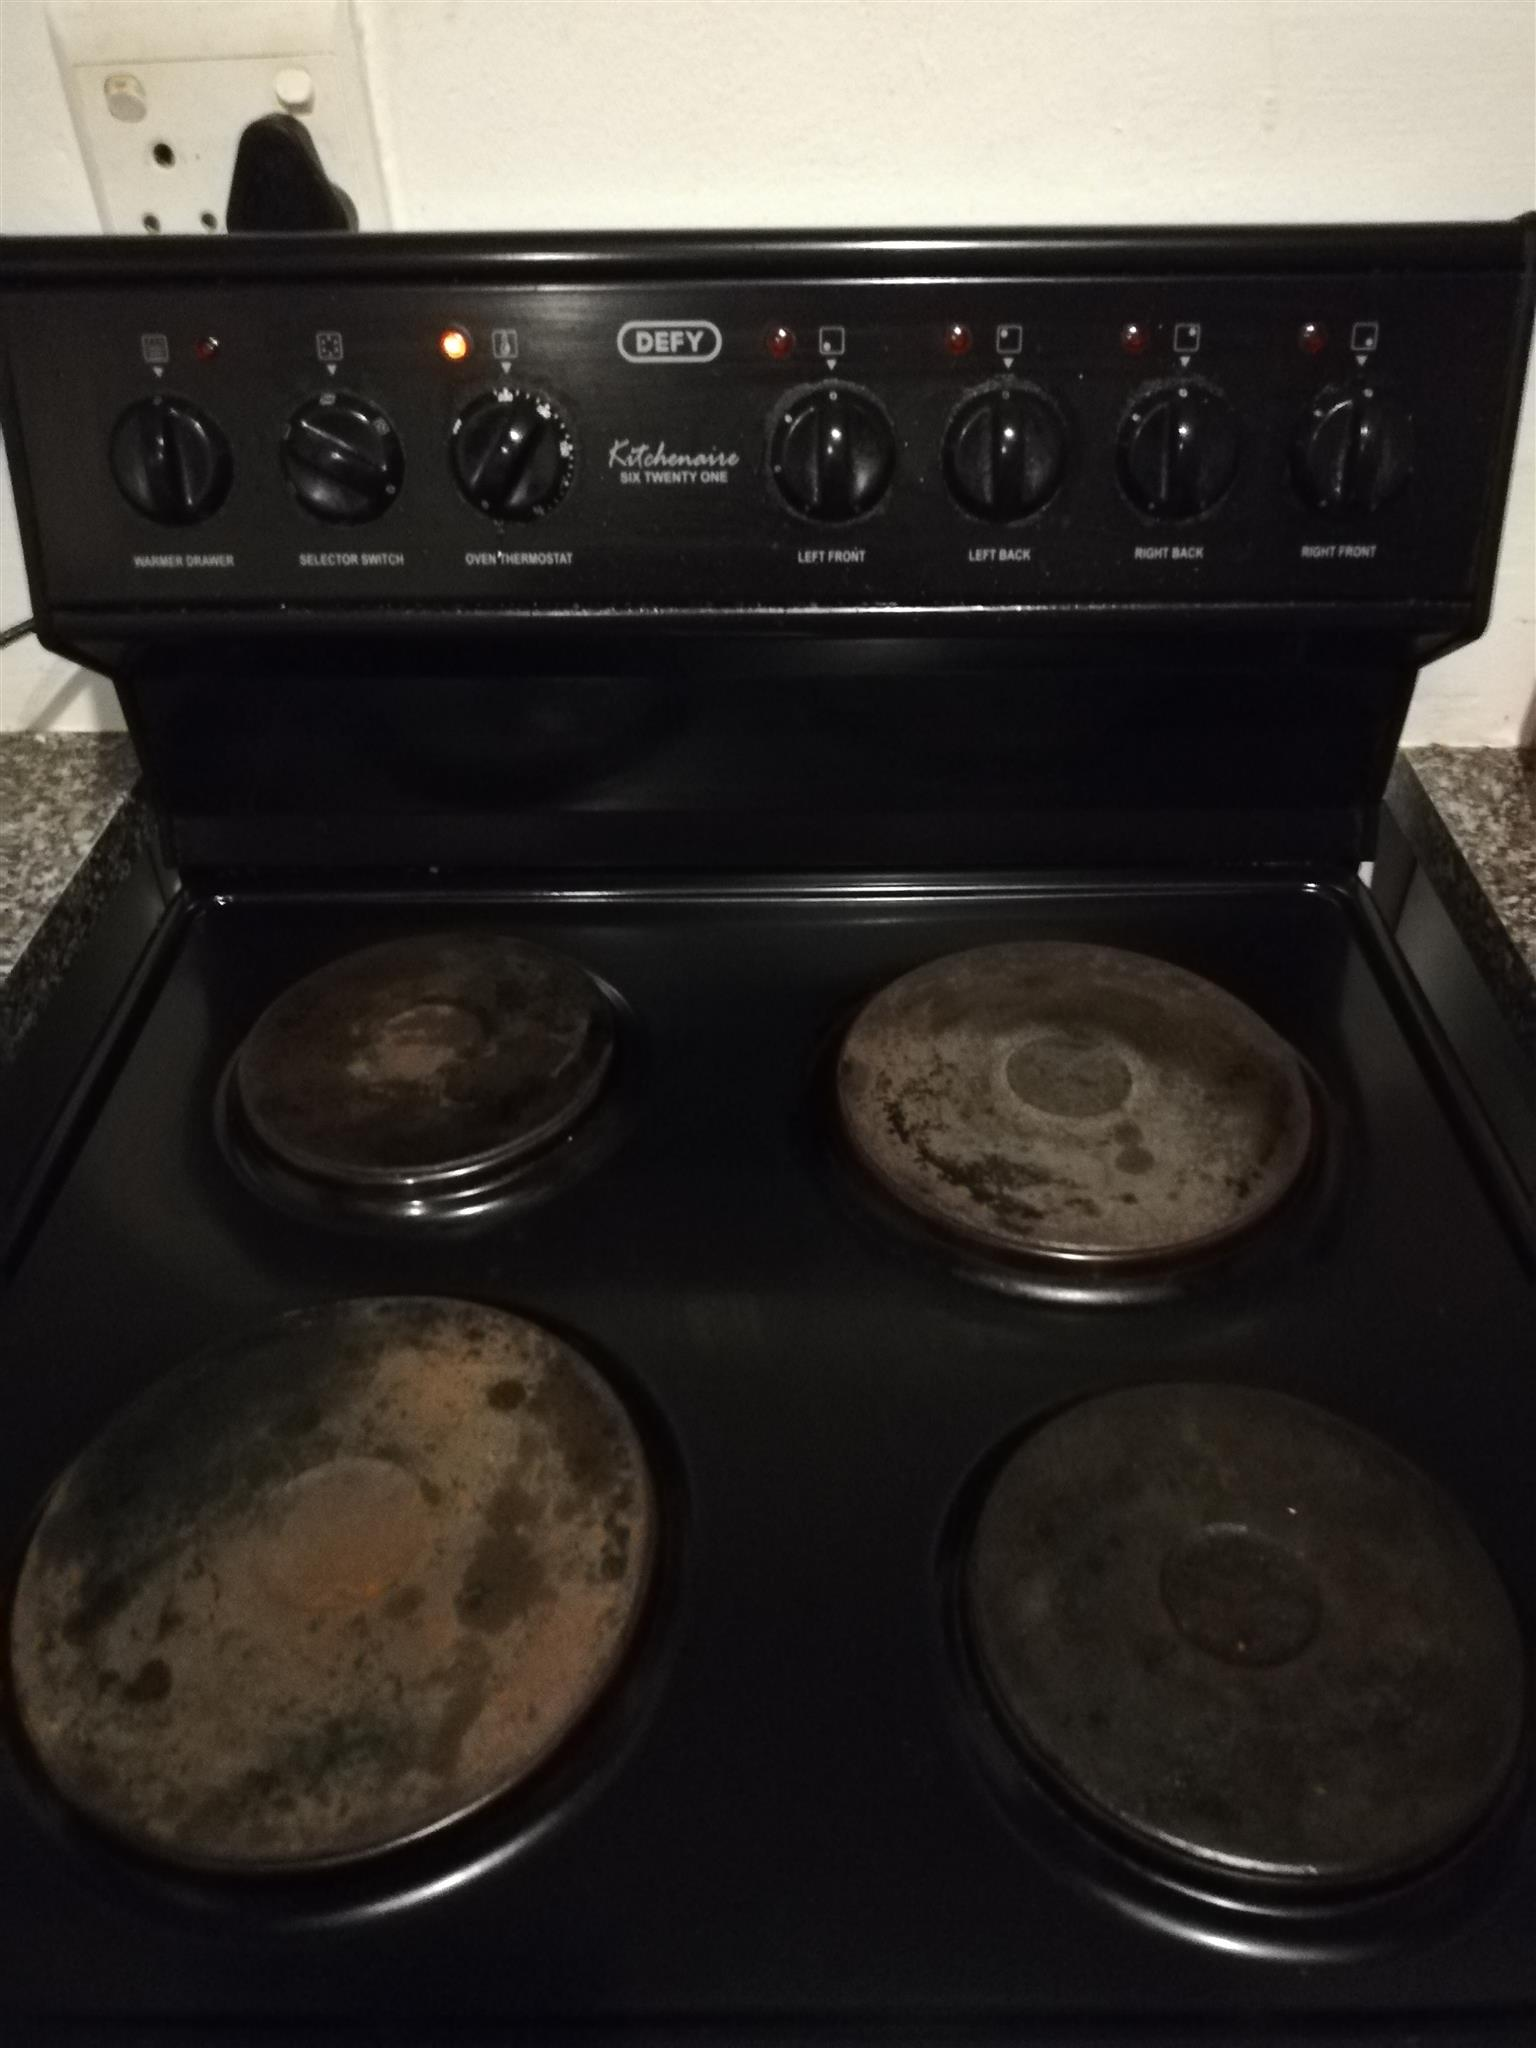 Urgent sale - 4 plate Defy stove for sale